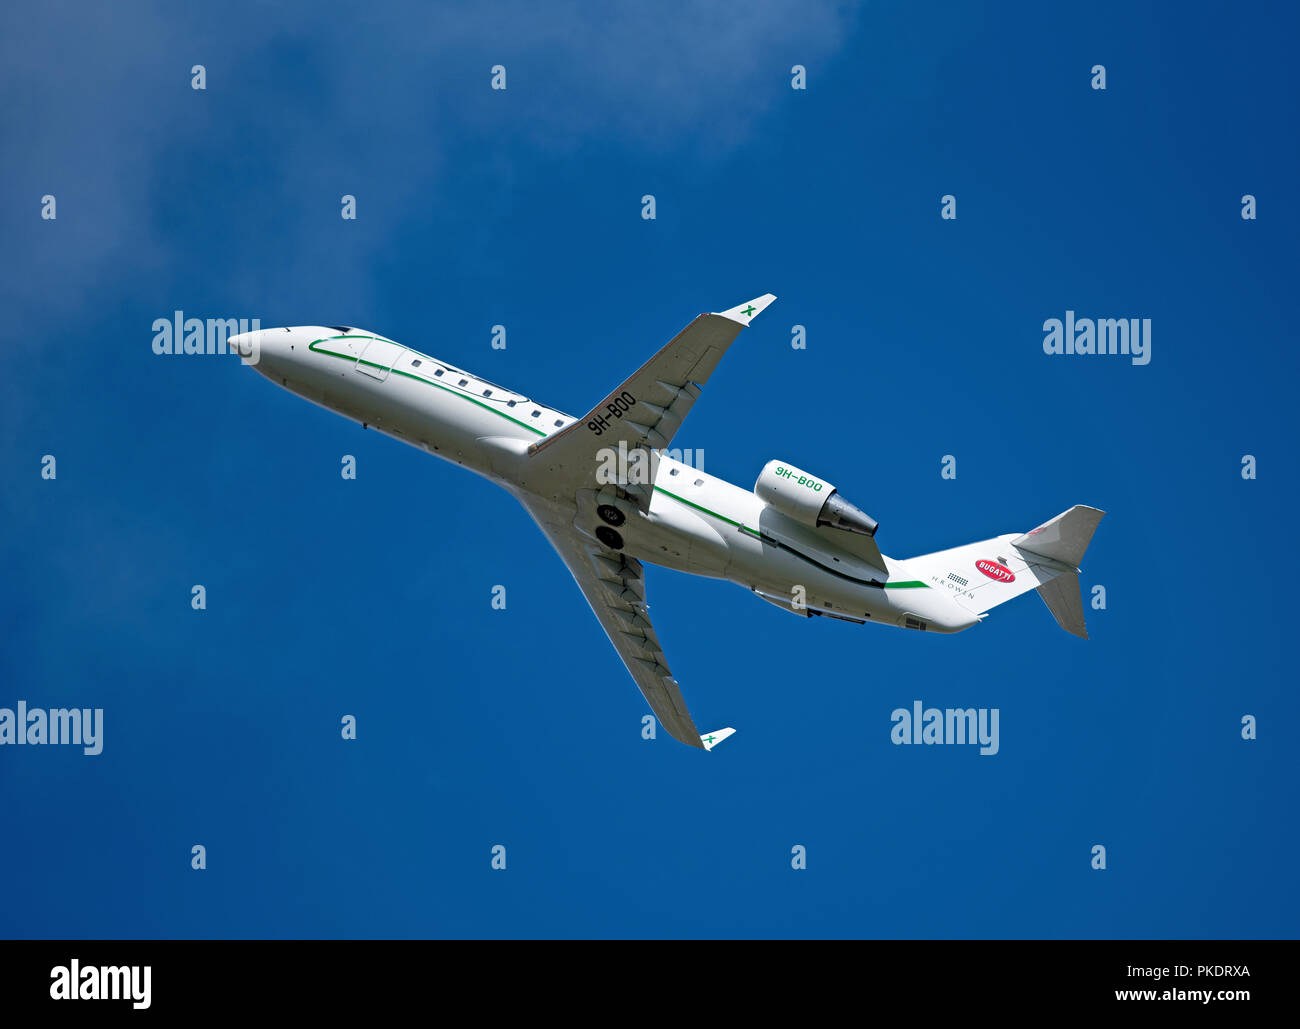 A Bombardier Challenger 850 Reg 9H-BOO visit to Inverness inverness Airport in the Scottish Highlands  UK. - Stock Image